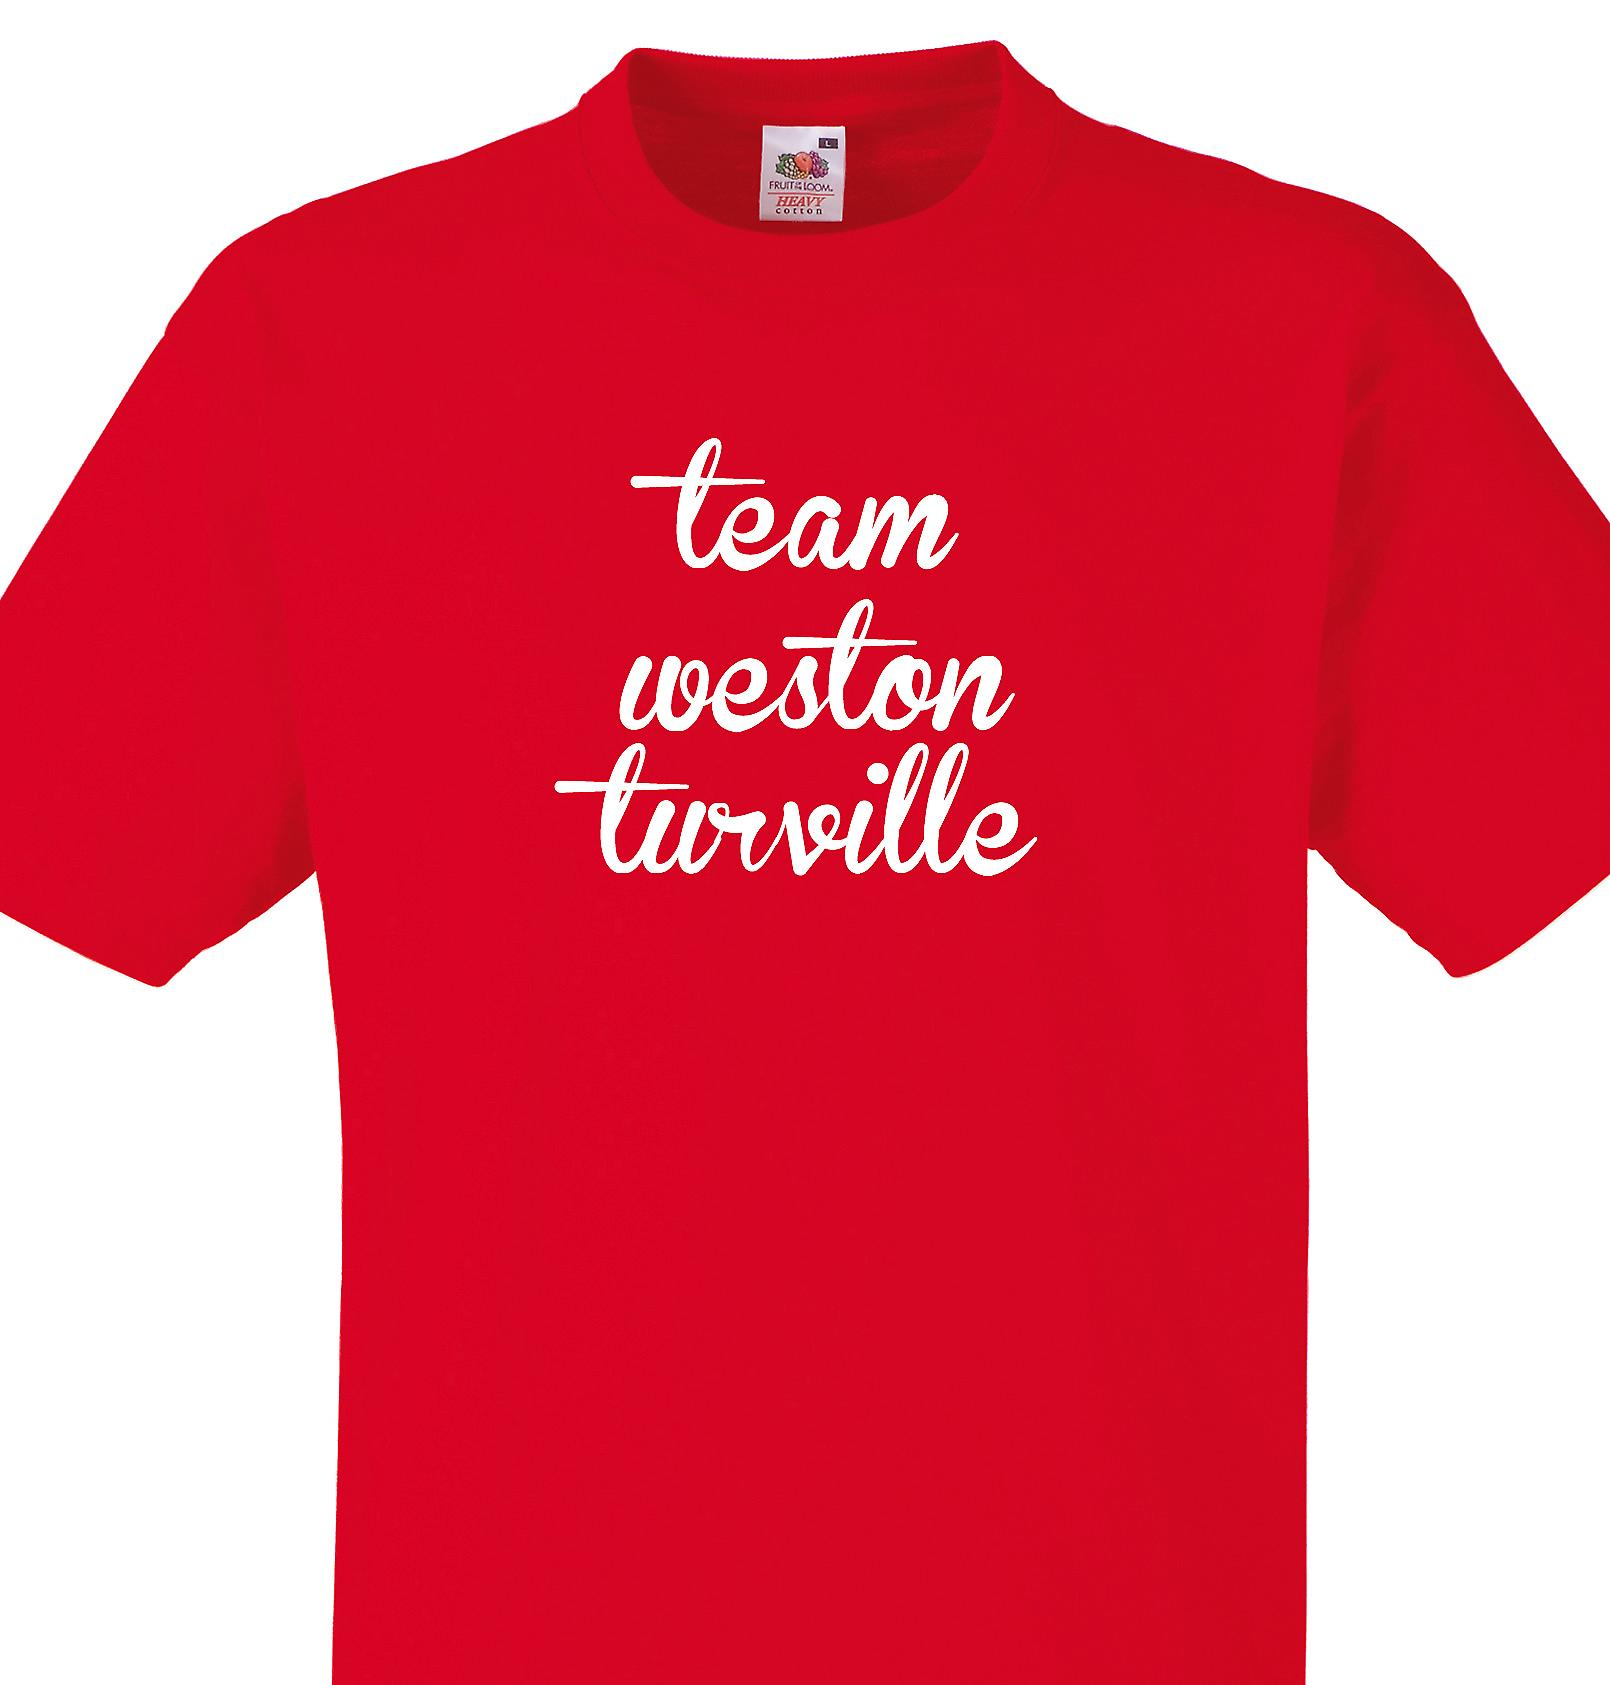 Team Weston turville Red T shirt